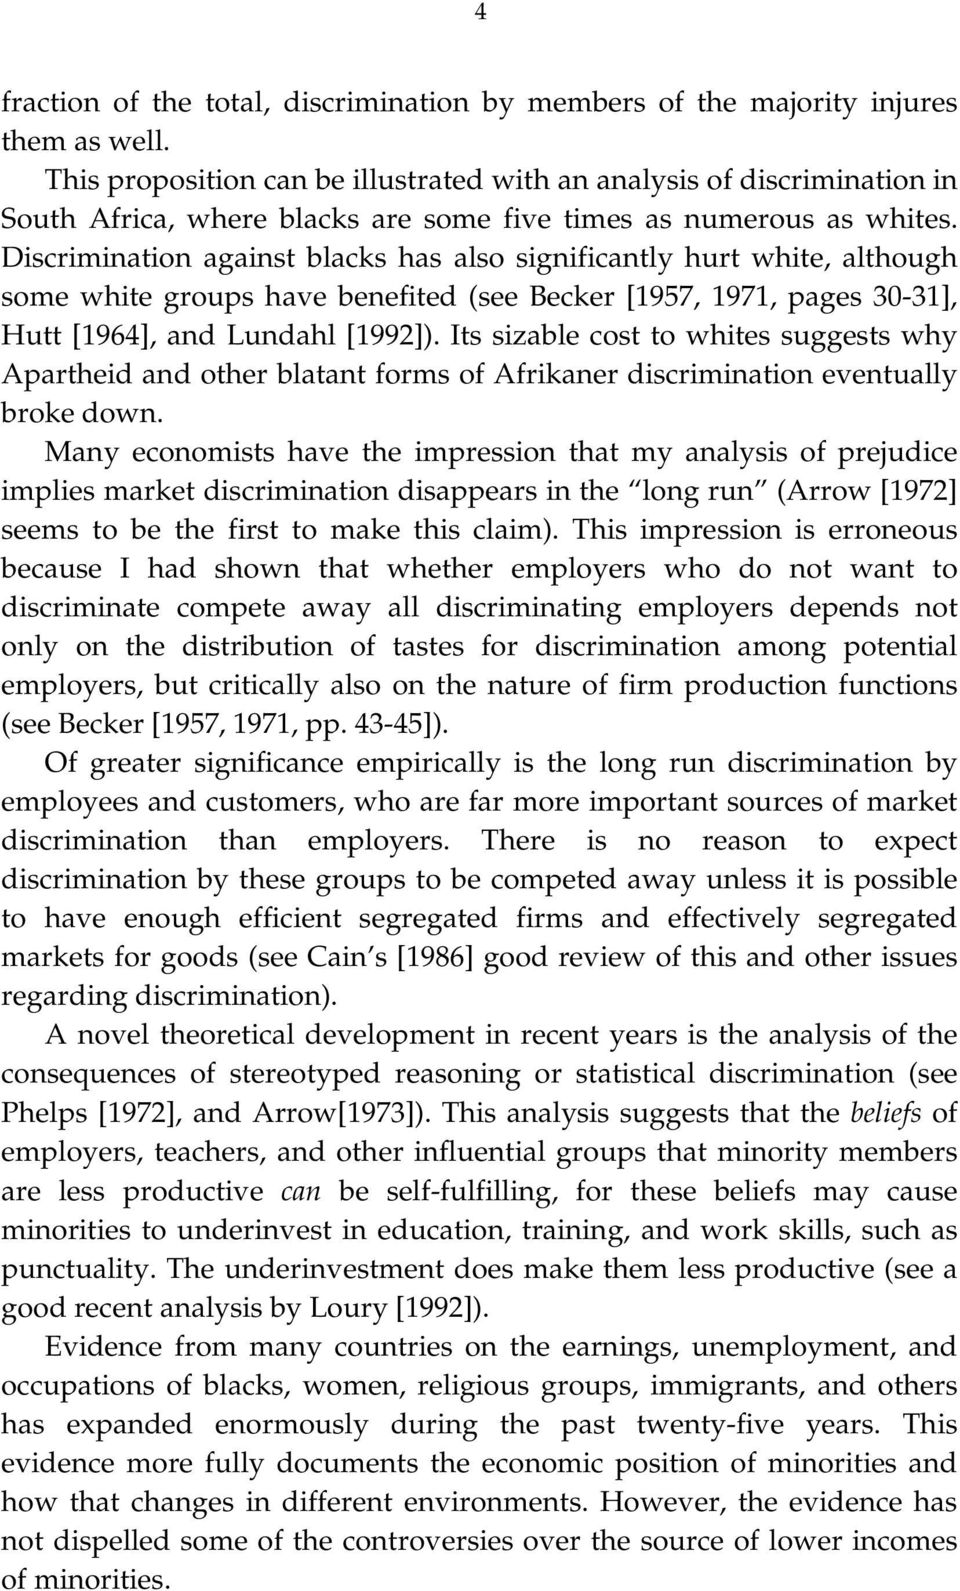 Discrimination against blacks has also significantly hurt white, although some white groups have benefited (see Becker [1957, 1971, pages 30-31], Hutt [1964], and Lundahl [1992]).